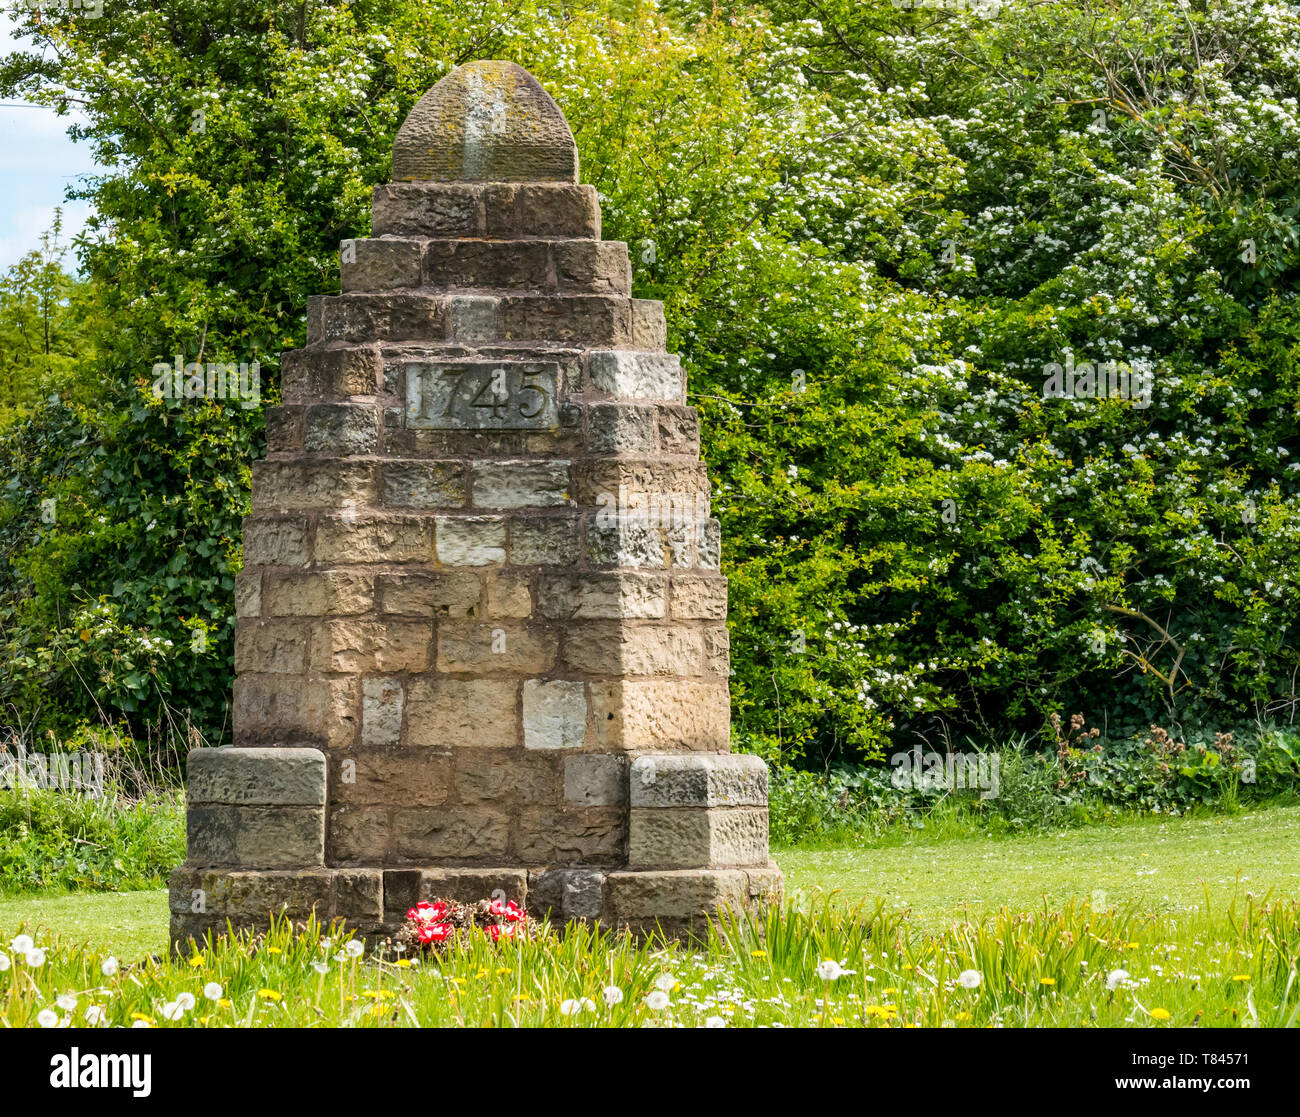 Battle of Prestonpans memorial with 1745 date of Jacobite rebellion, Prestonpans, East Lothian, Scotland, UK Stock Photo